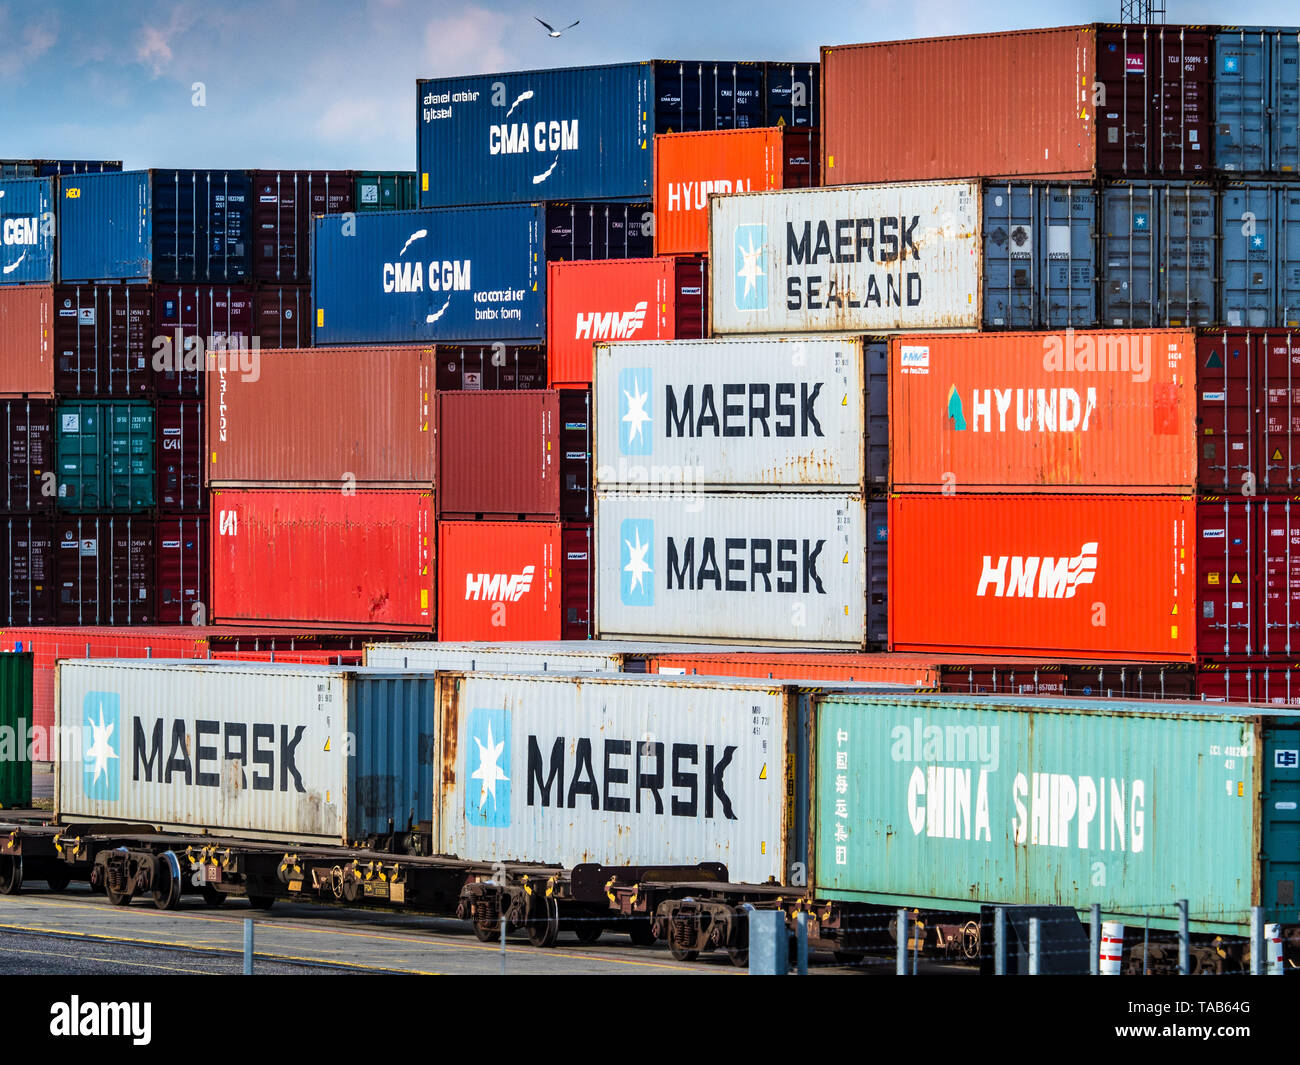 Rail Freight Terminal UK - Intermodal Shipping containers being loaded onto freight trains for onward transport at Felixstowe Port railhead. Stock Photo